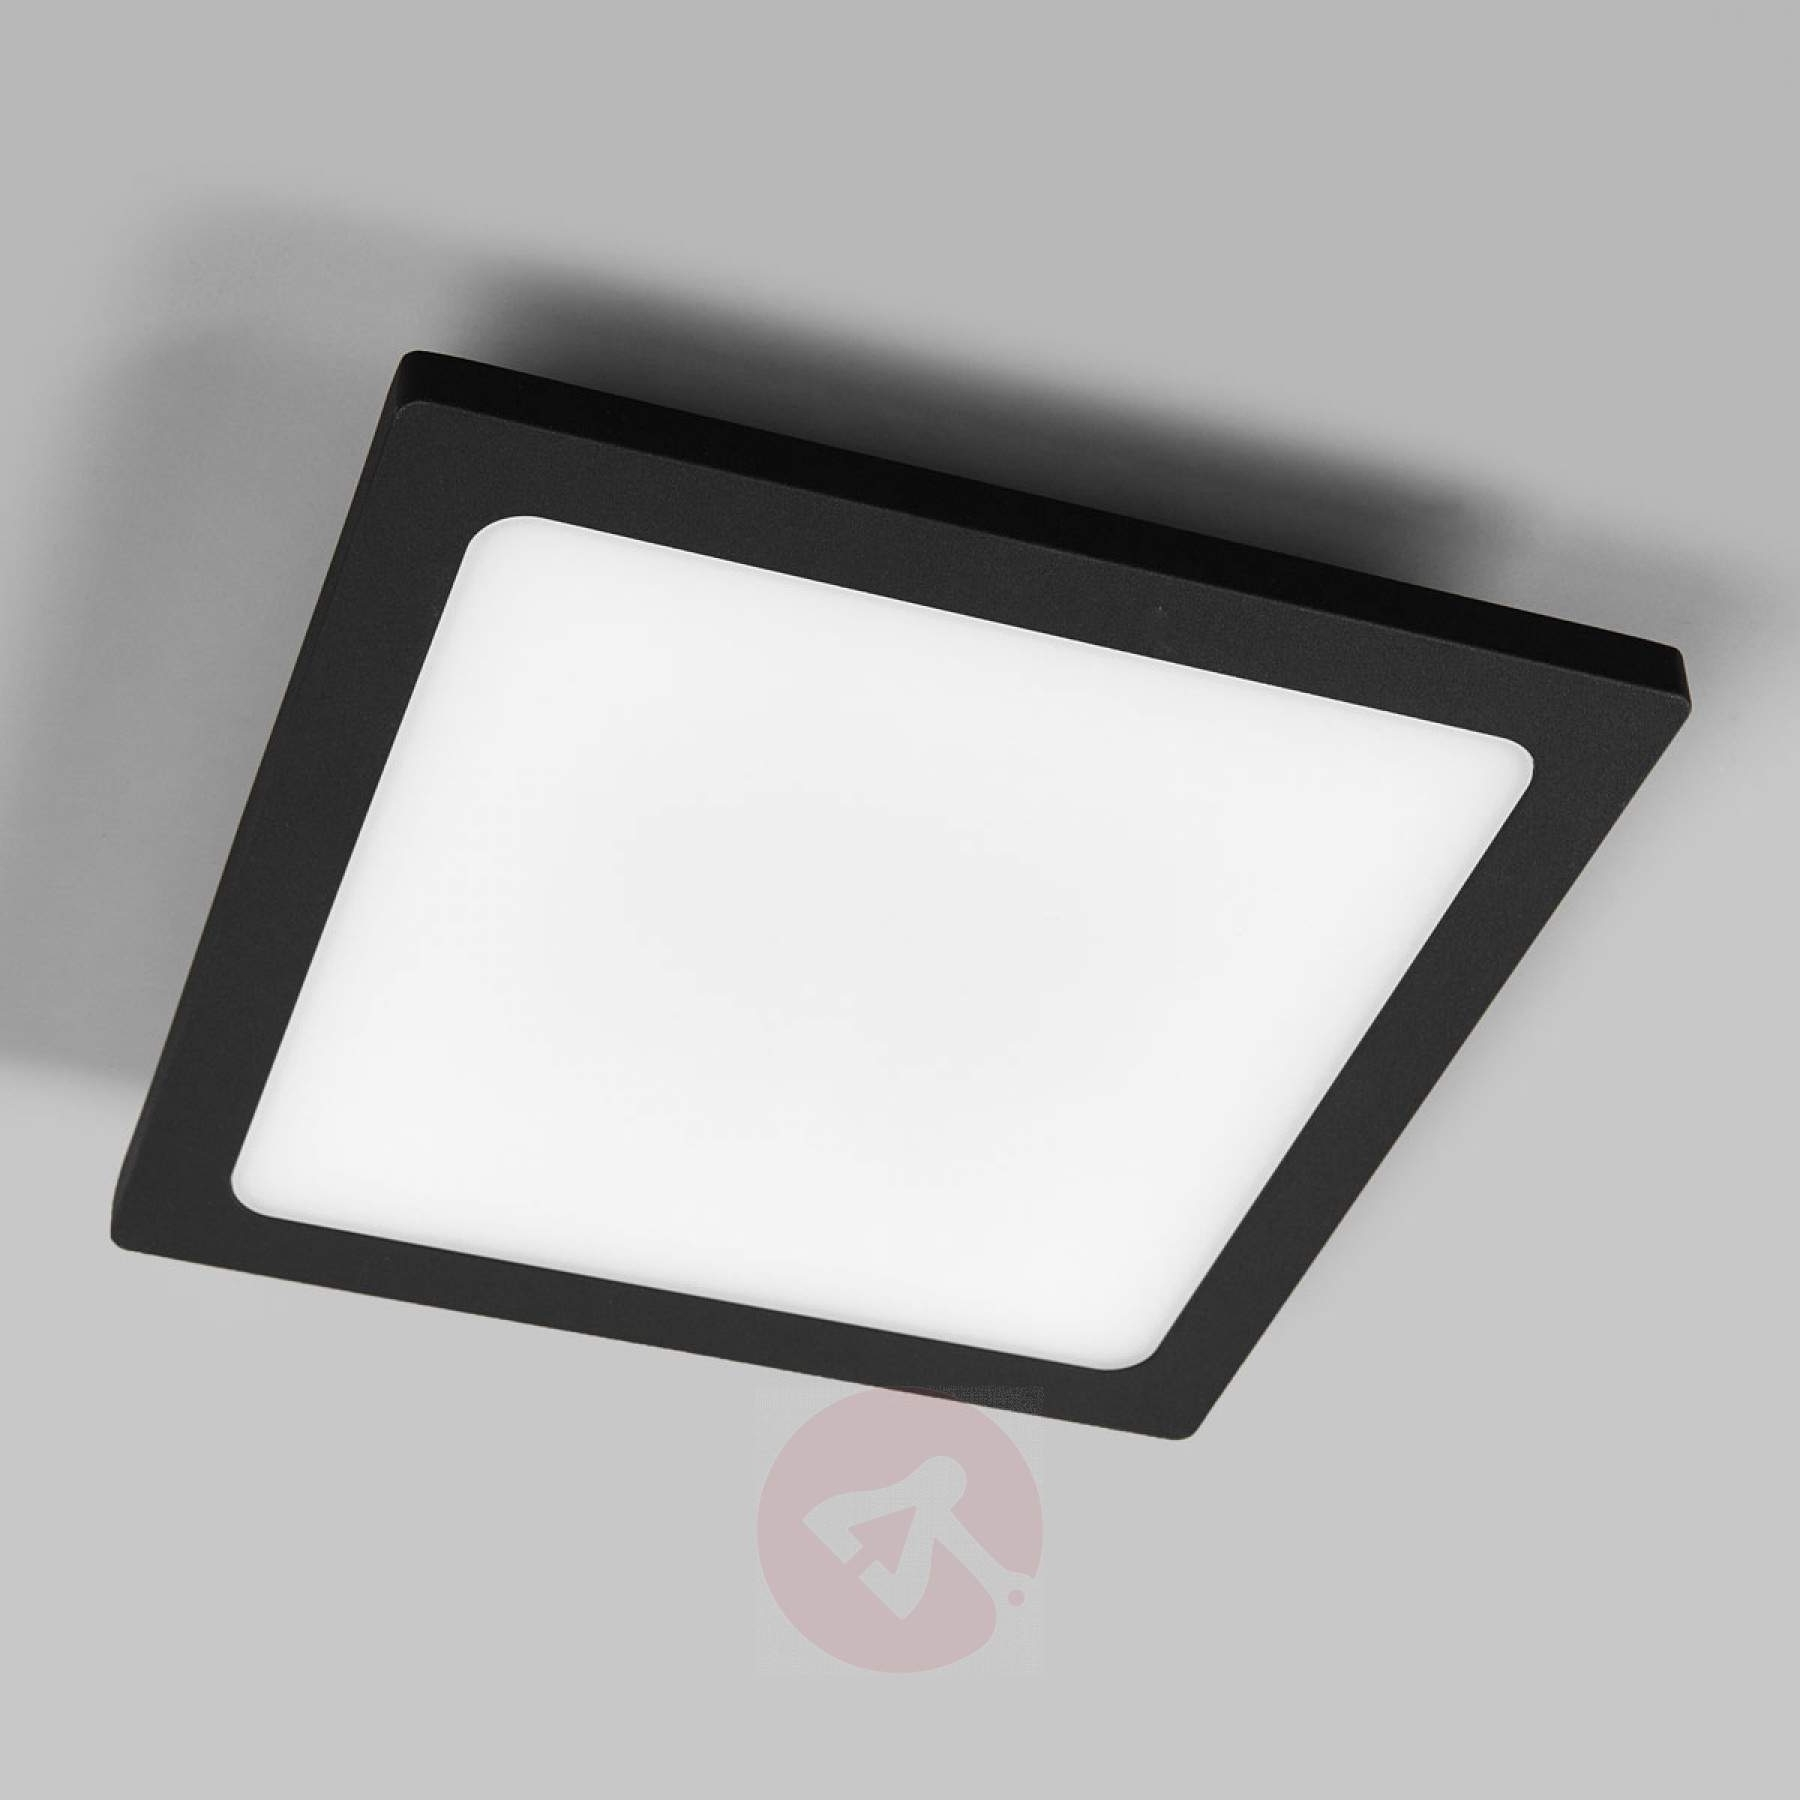 Well Known Outdoor Ceiling Lights With Sensor In Mabella Led Outdoor Ceiling Lamp With Sensor (View 14 of 20)